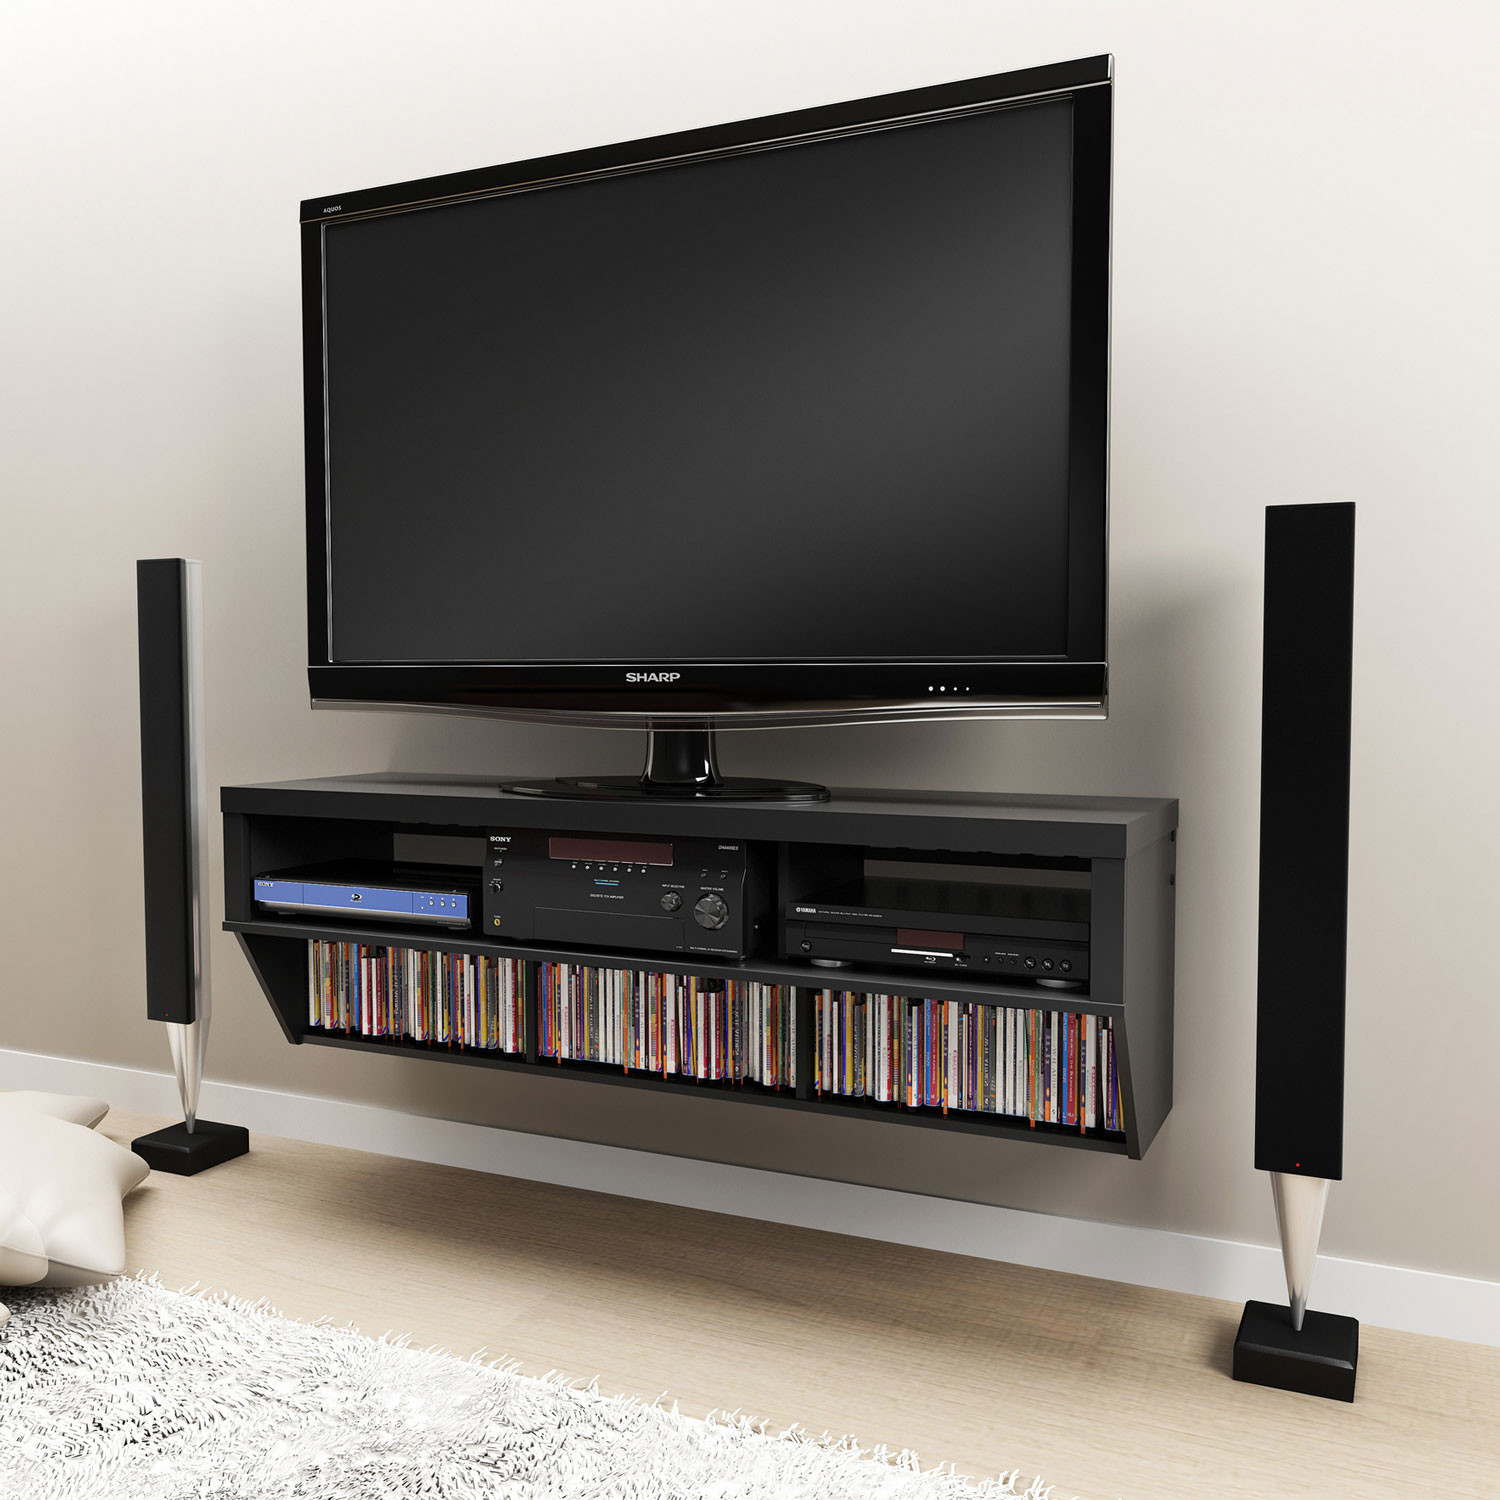 Best ideas about Wall Mount Tv Stand . Save or Pin Furniture Black Wall Mount Tv Stand With Tempered Glass Now.